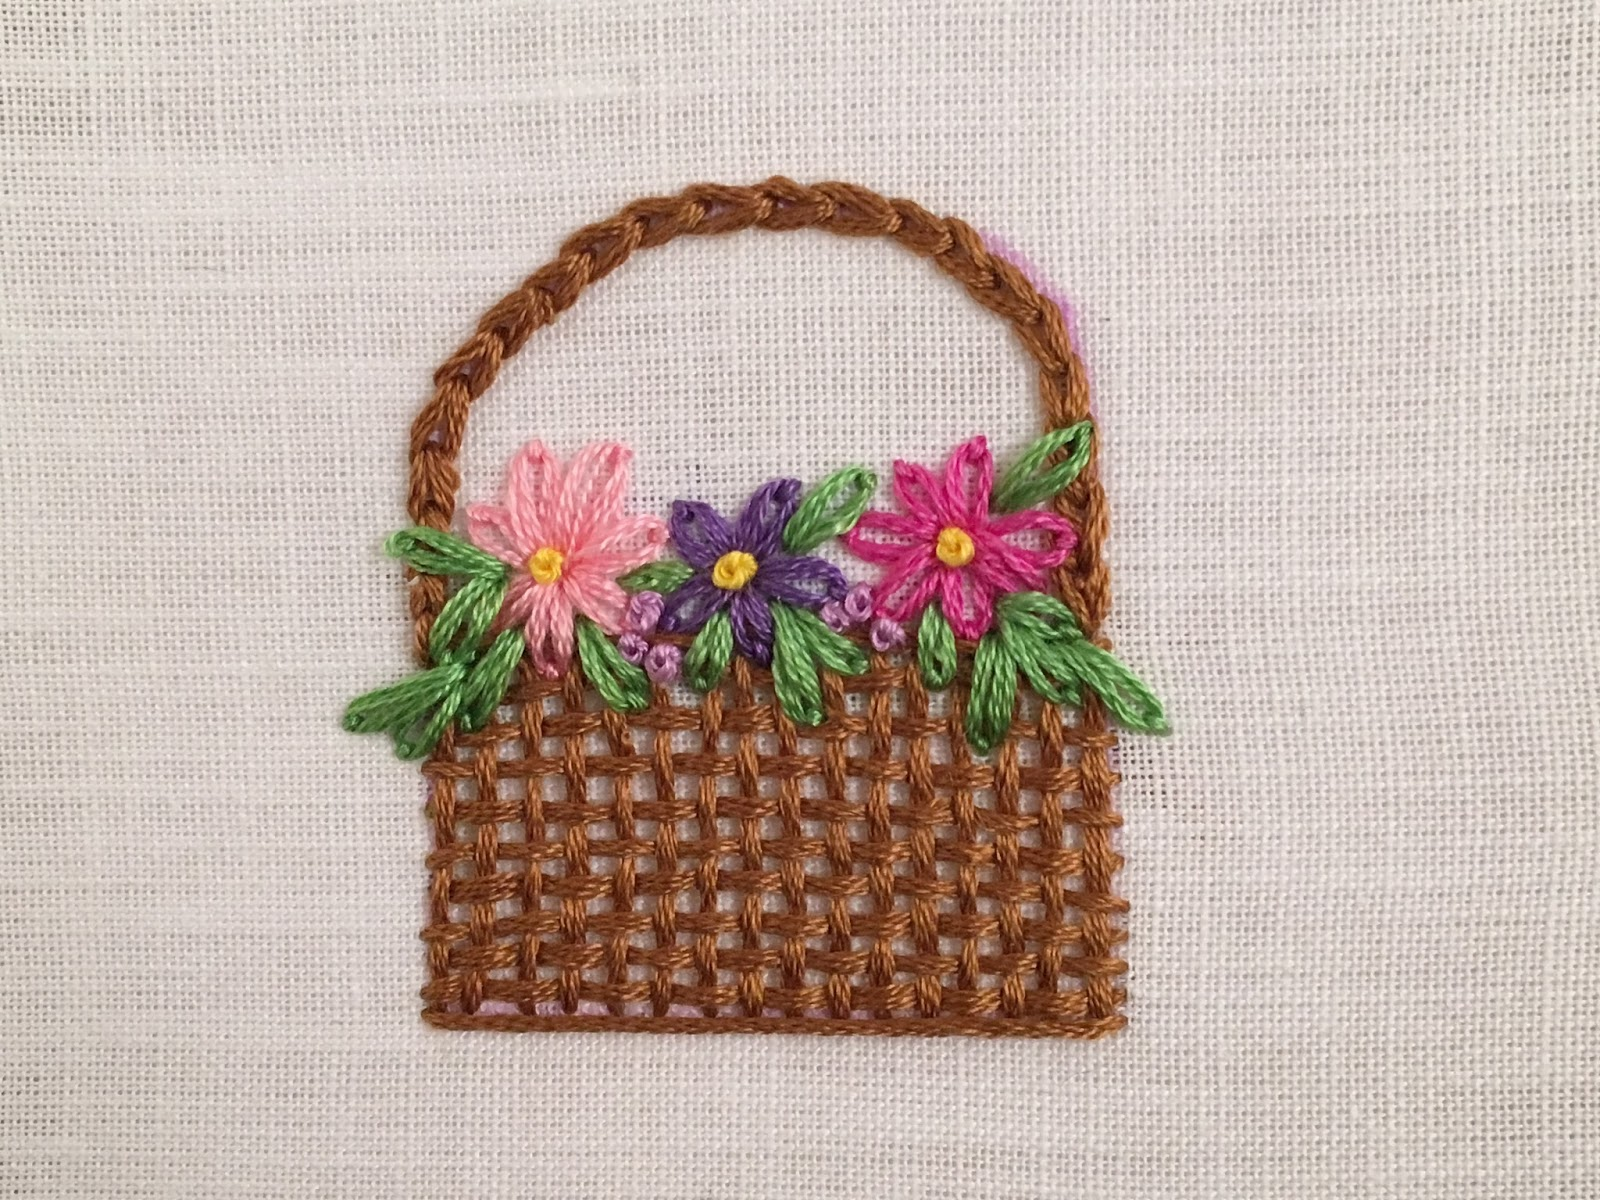 Woven Basket with flowers, a tutorial by Michelle for Mooshiestitch Monday on Feeling Stitchy